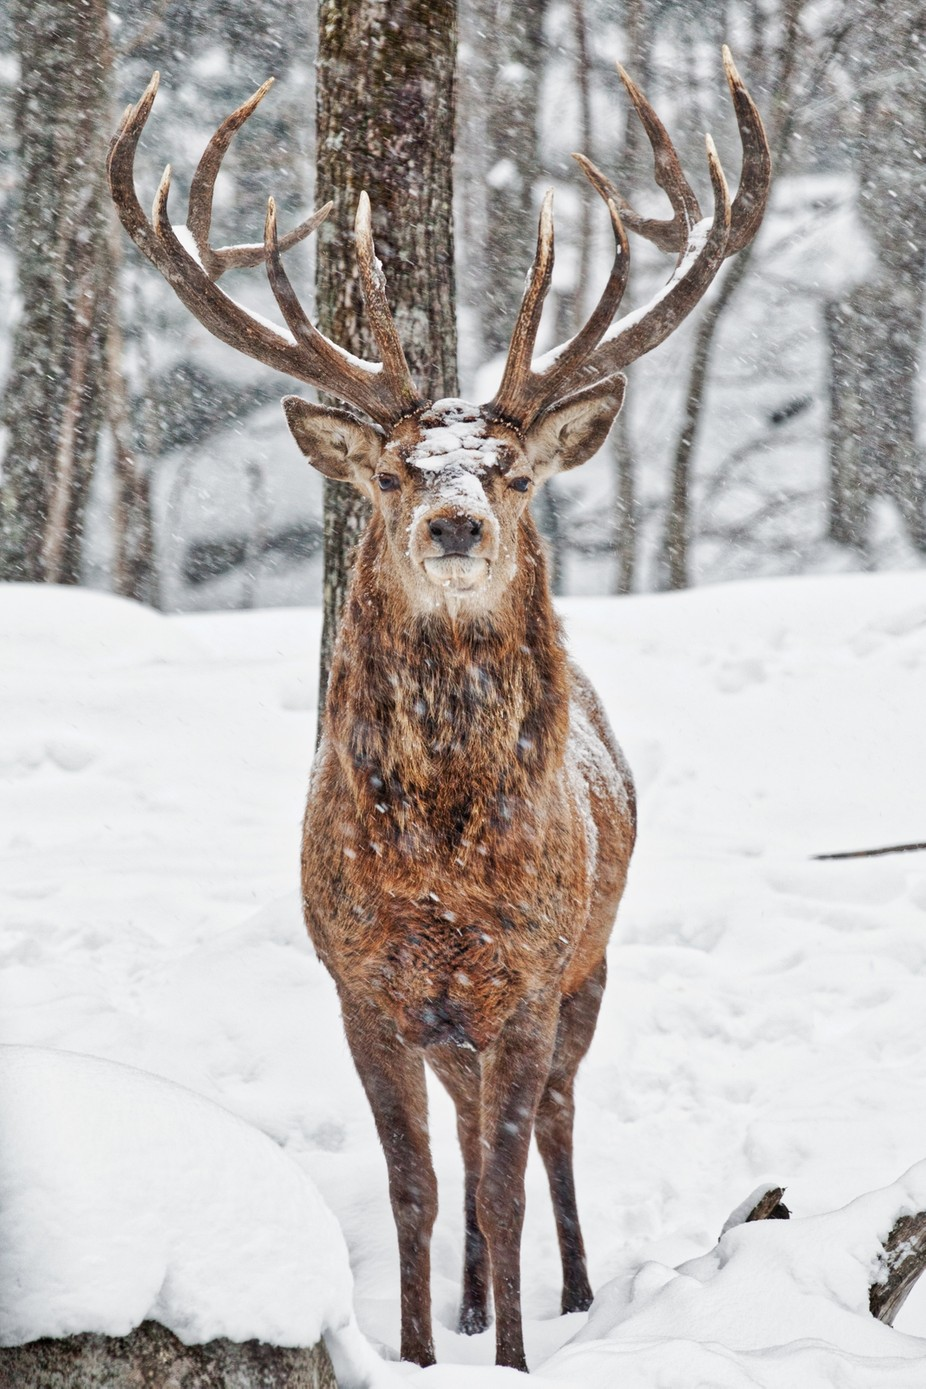 Red Deer in snow_7 by JacquesH60 - Image Of The Month Photo Contest Vol 29